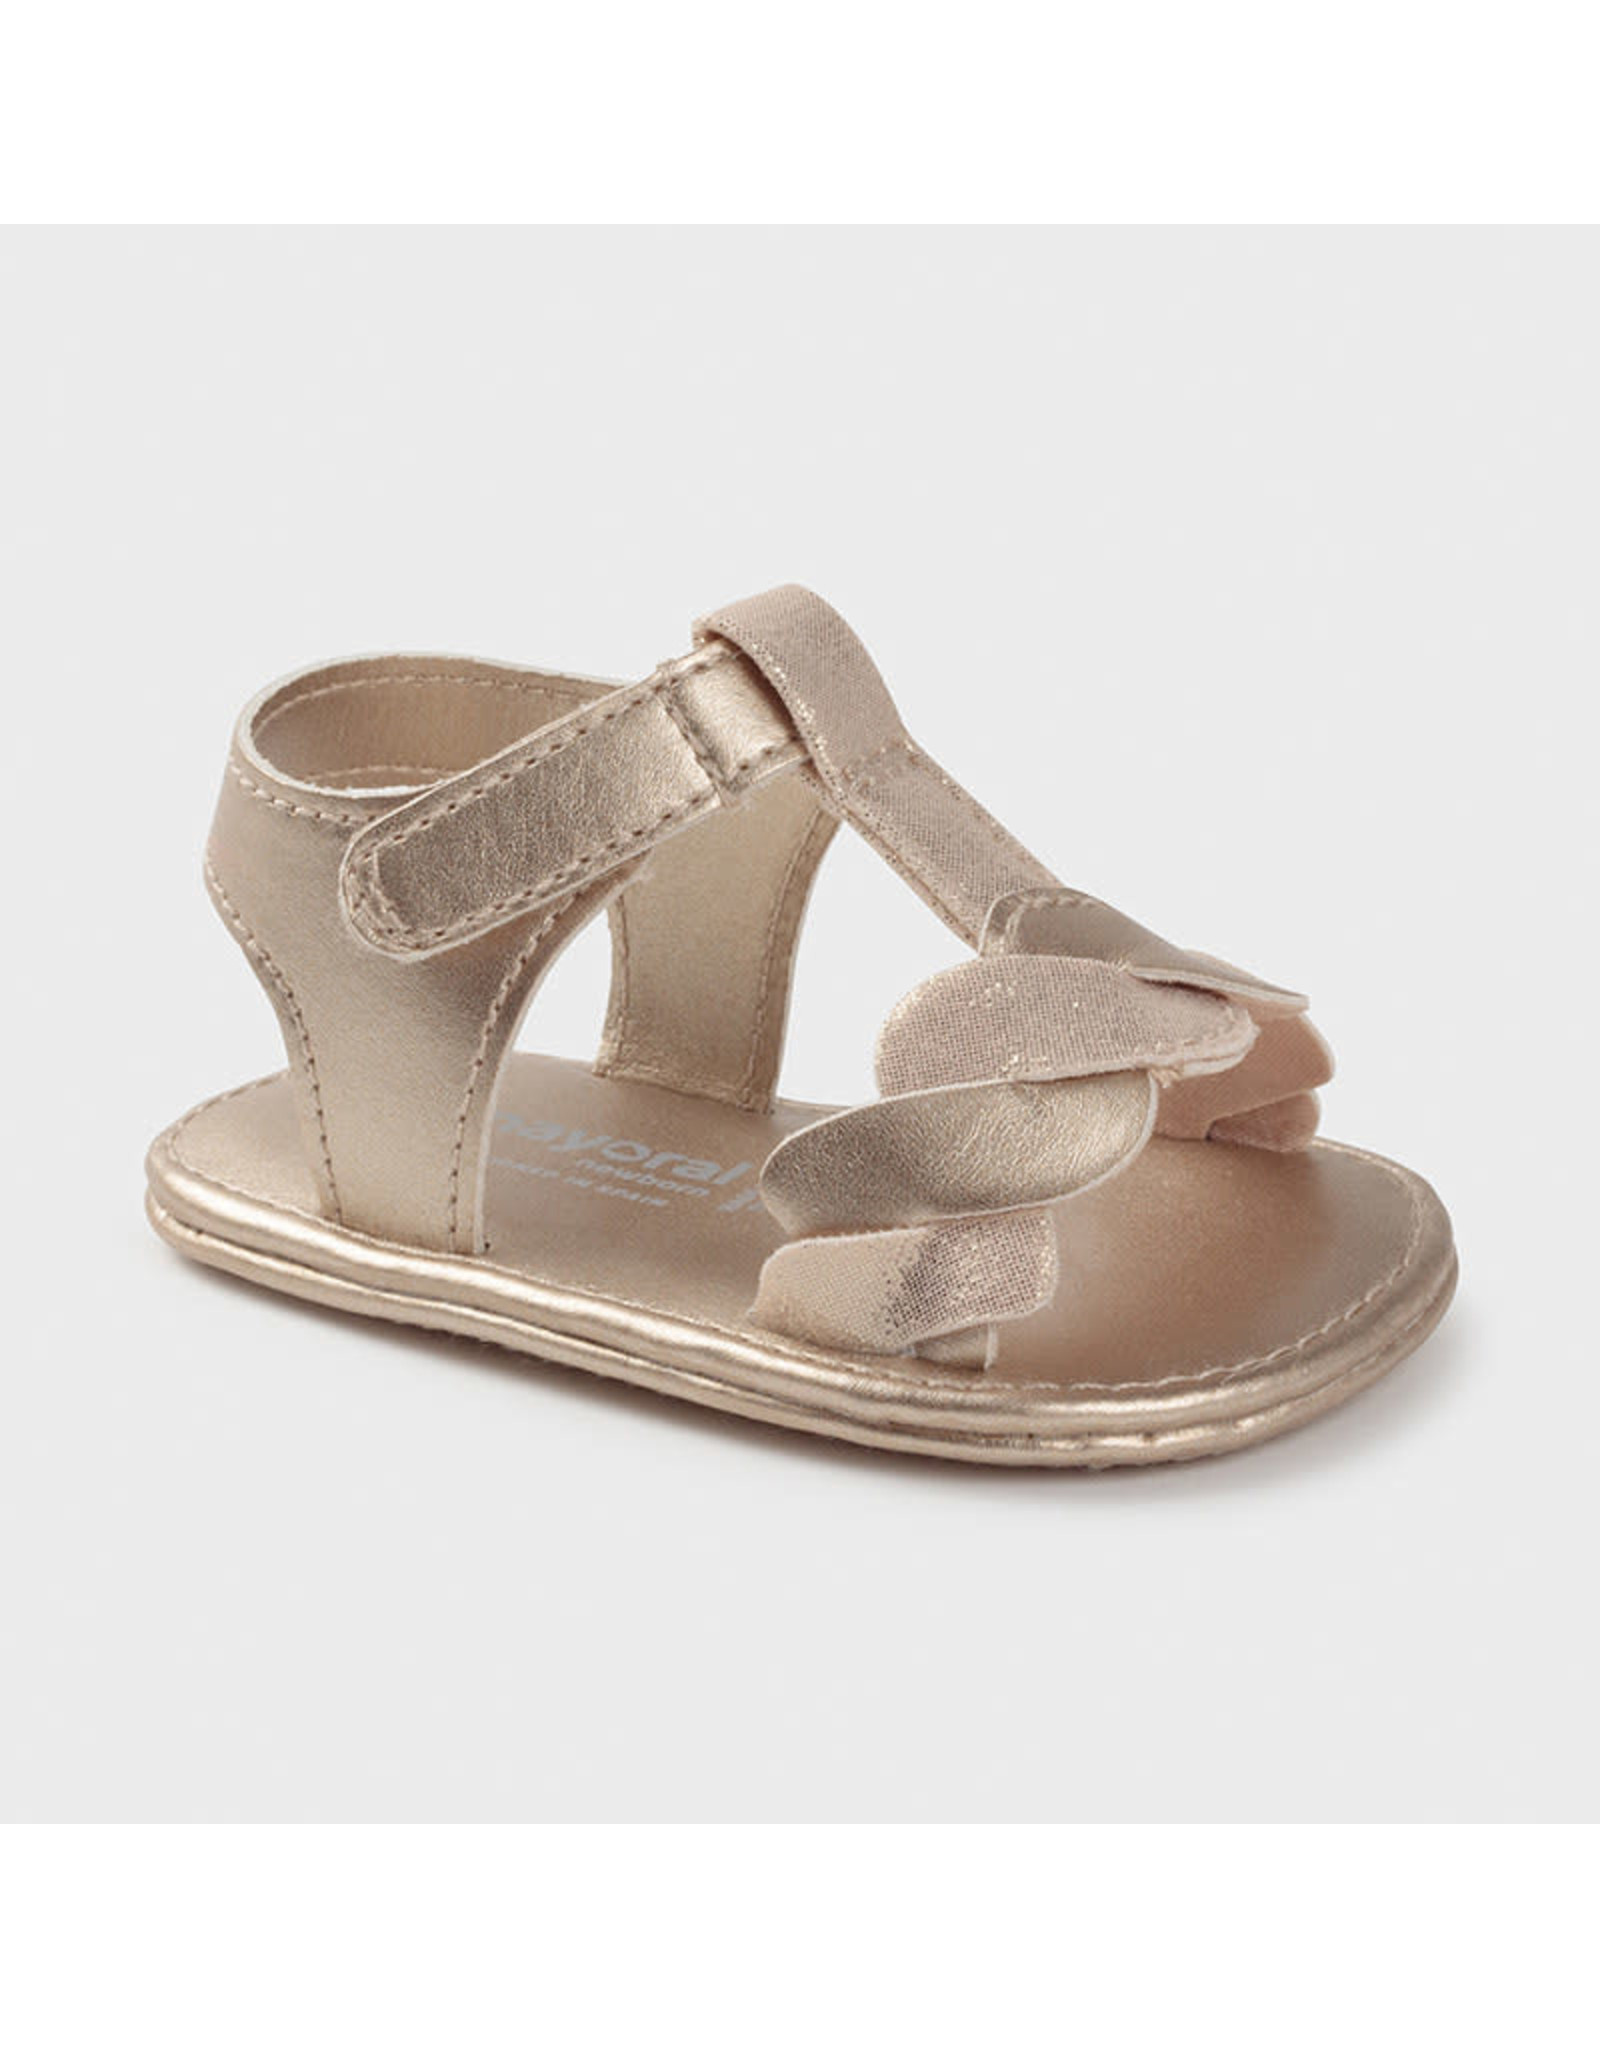 Mayoral Sandals - Beige Lure